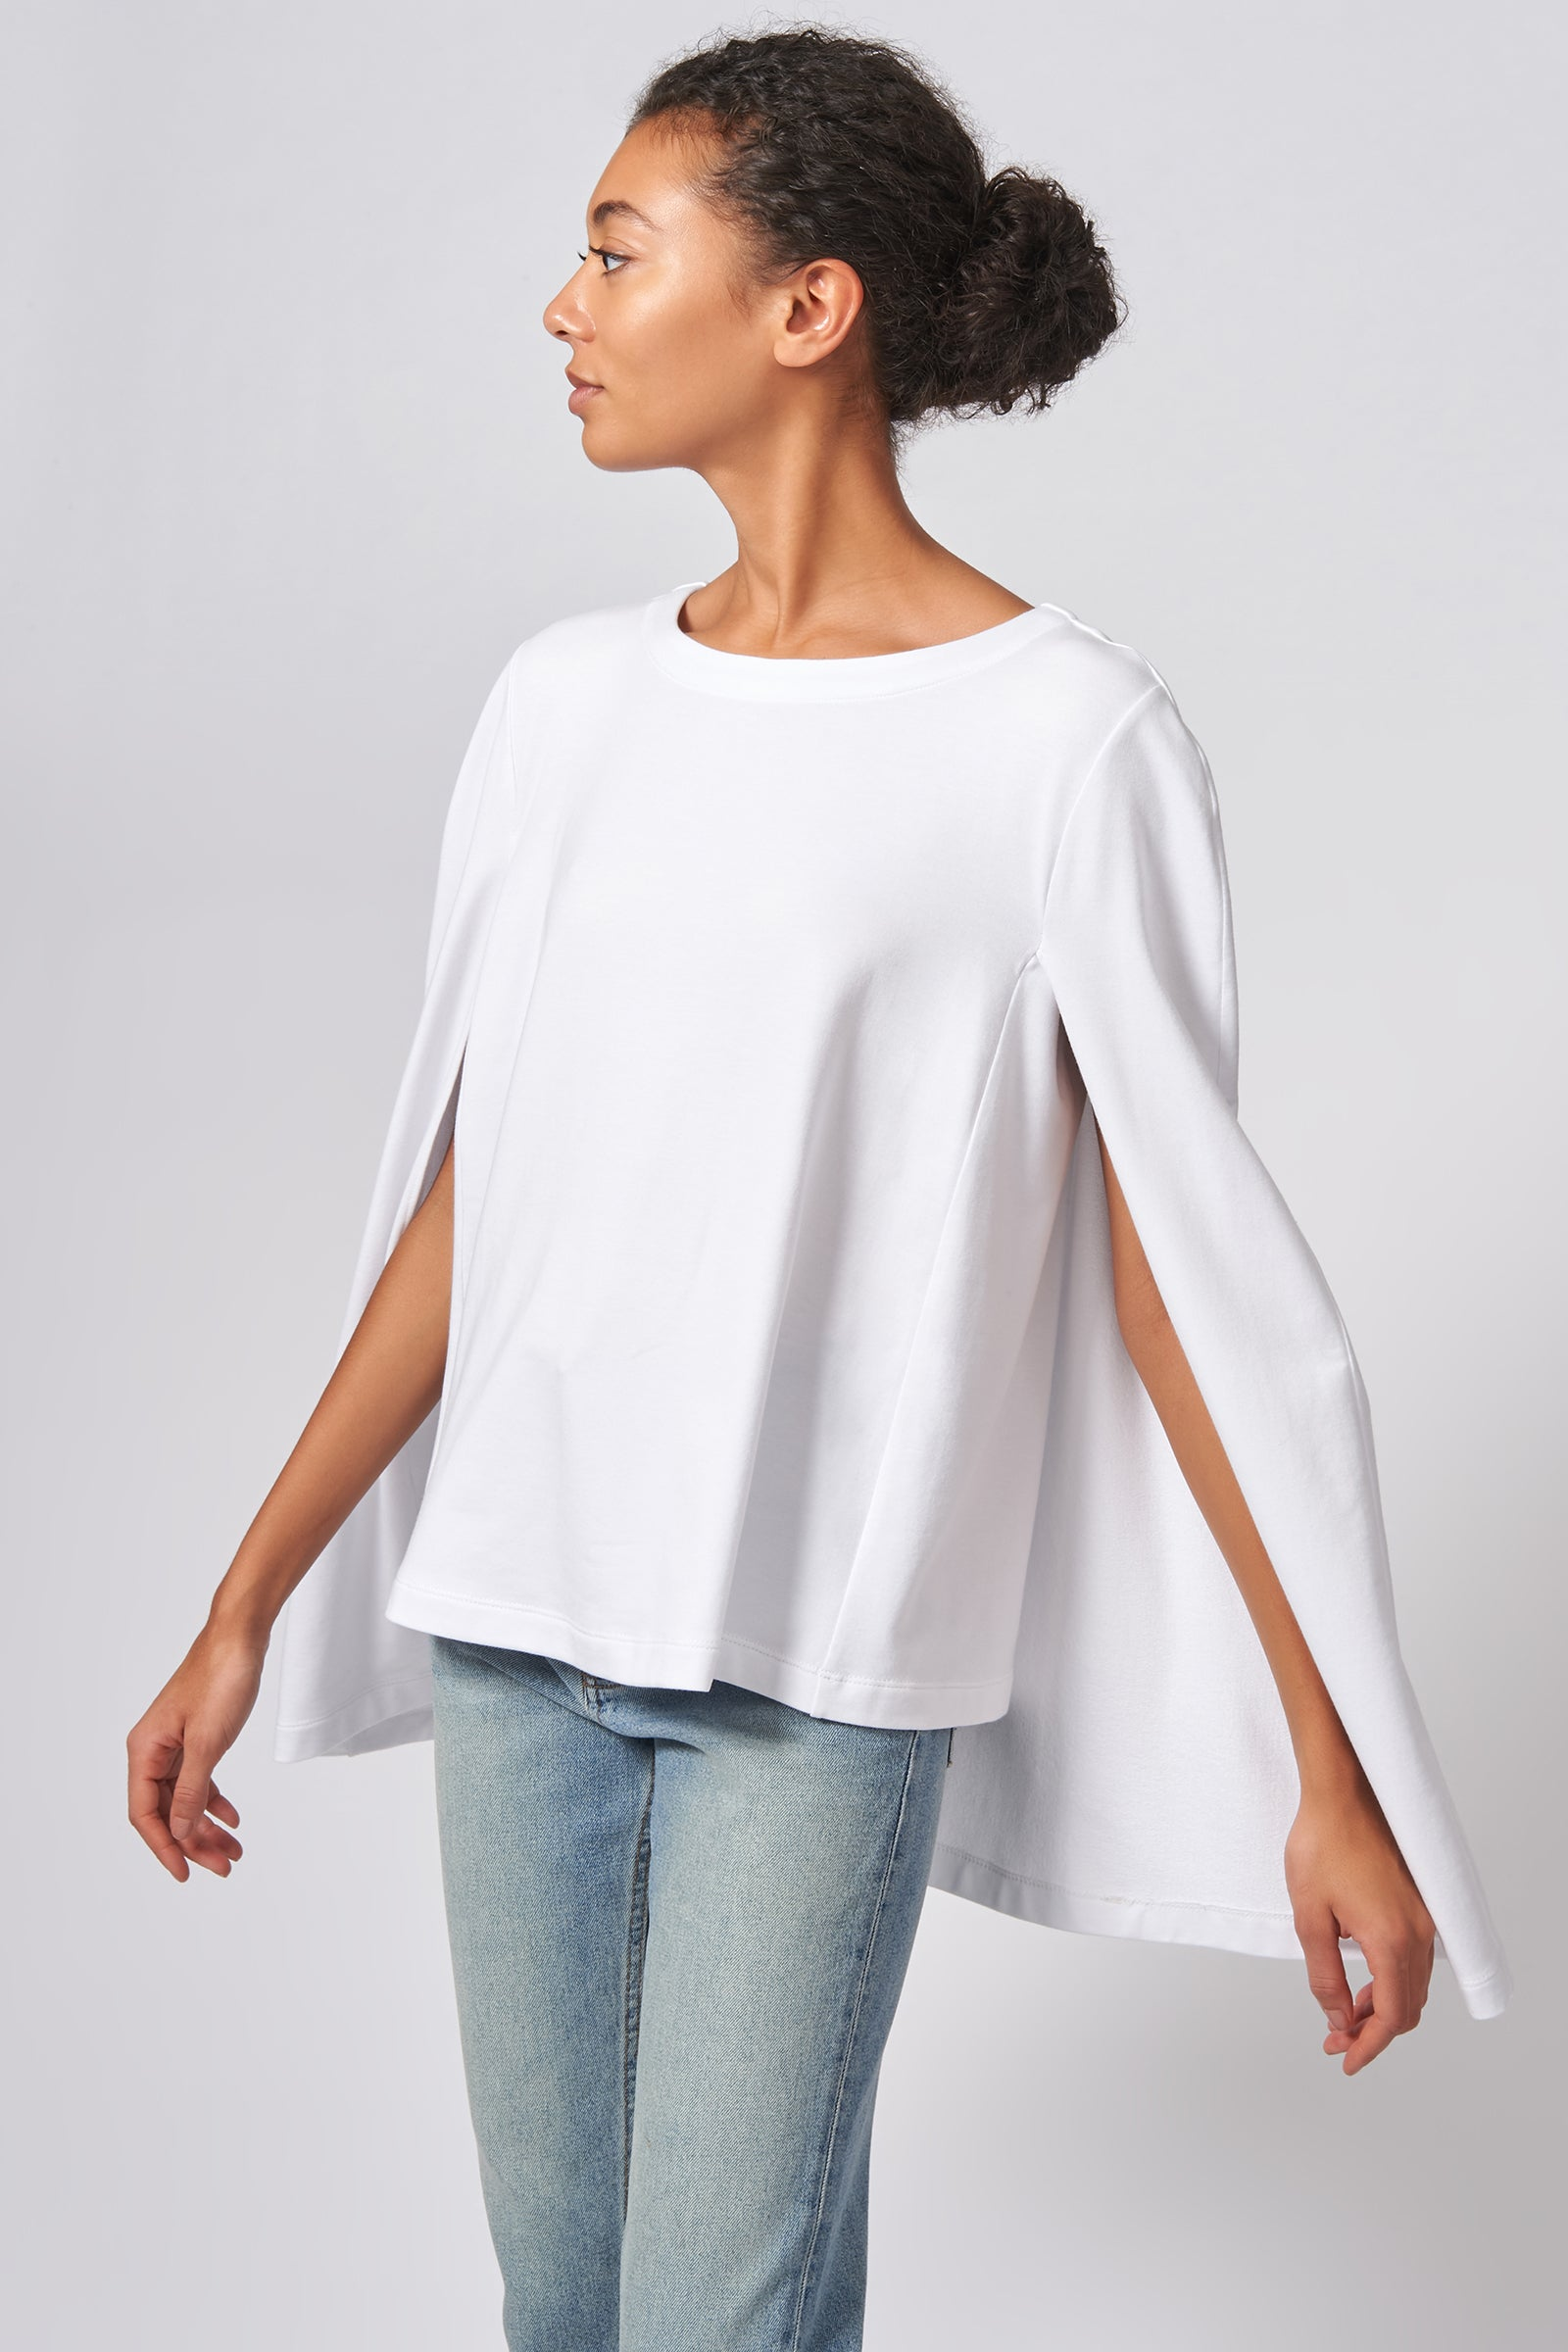 Kal Rieman Cape Sweatshirt in White on Model Front Side View